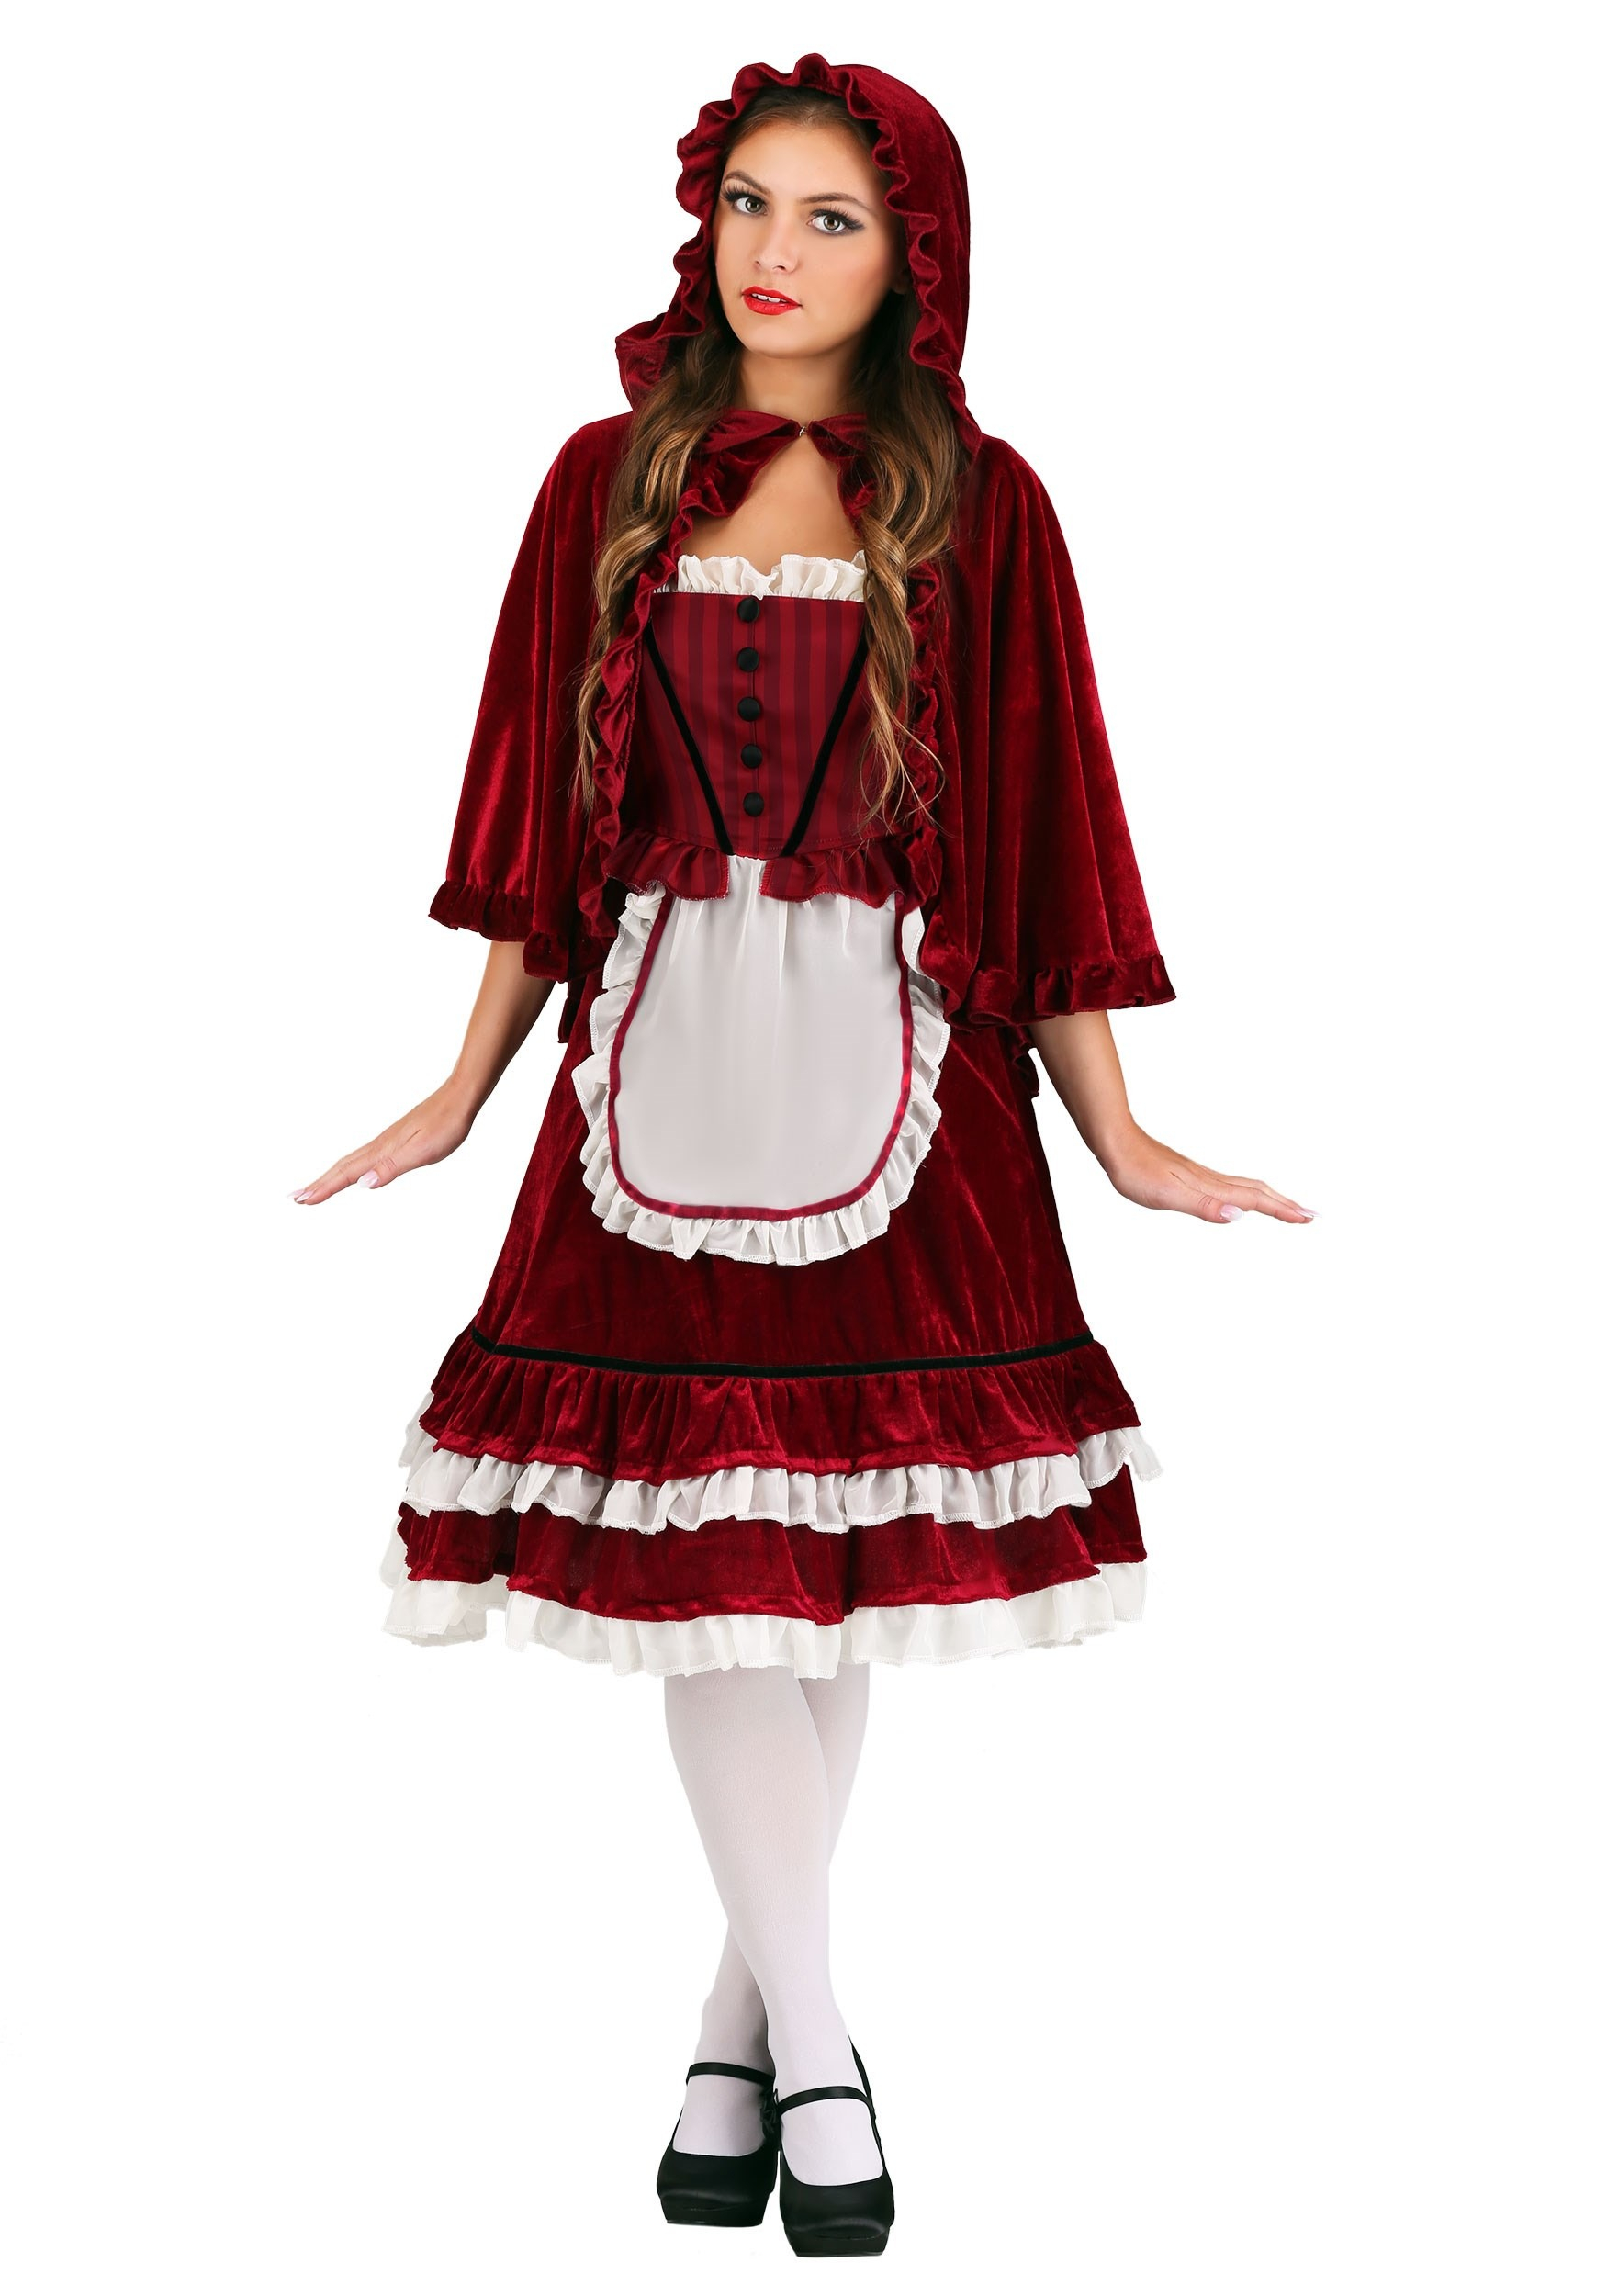 Classic Red Riding Hood Costume for Women